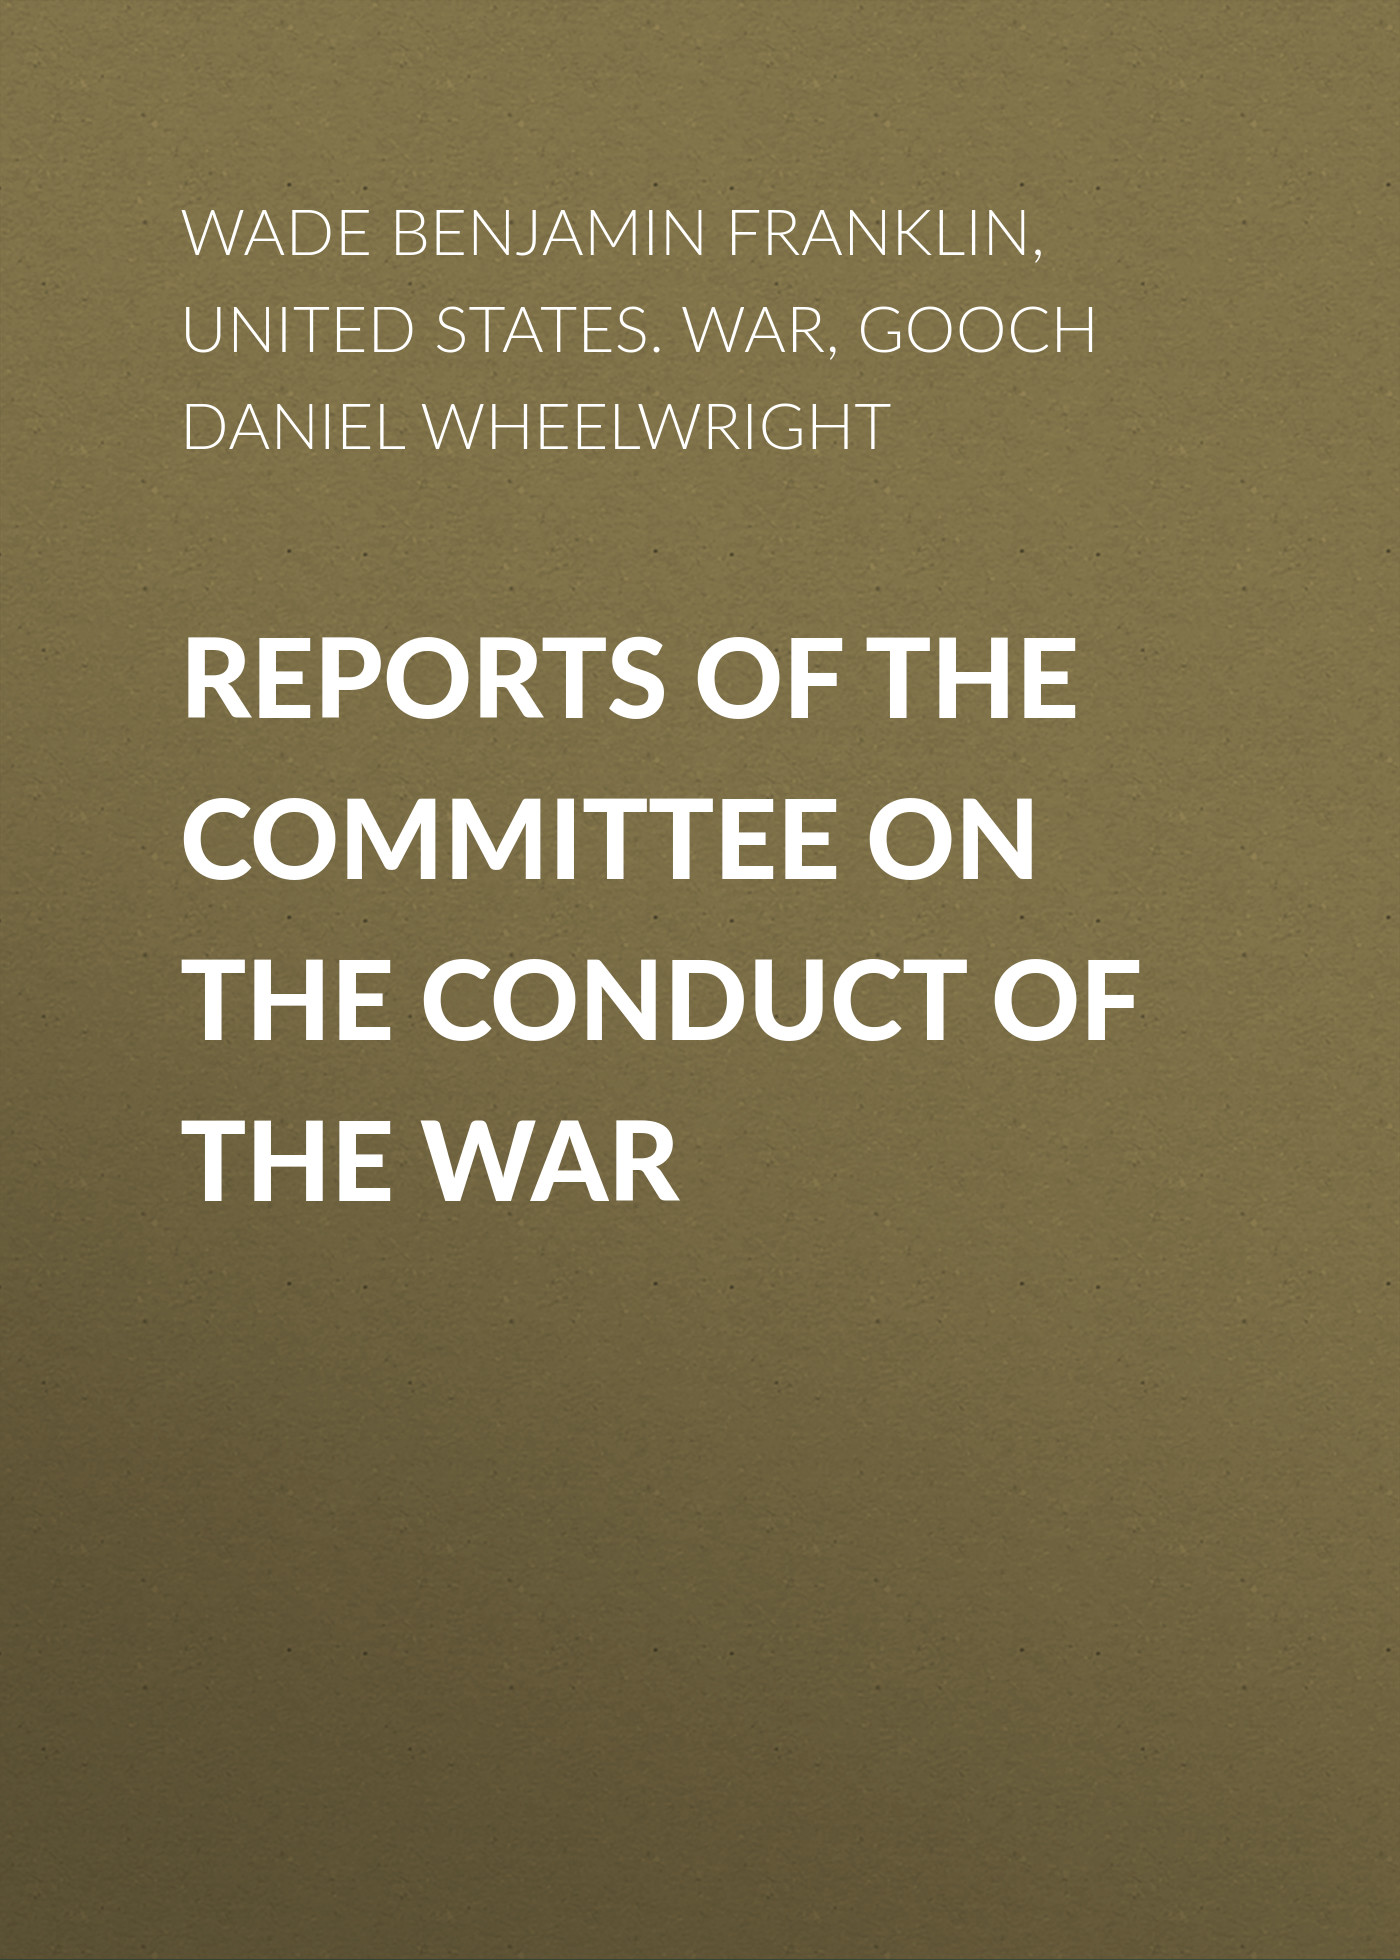 Reports of the Committee on the Conduct of the War